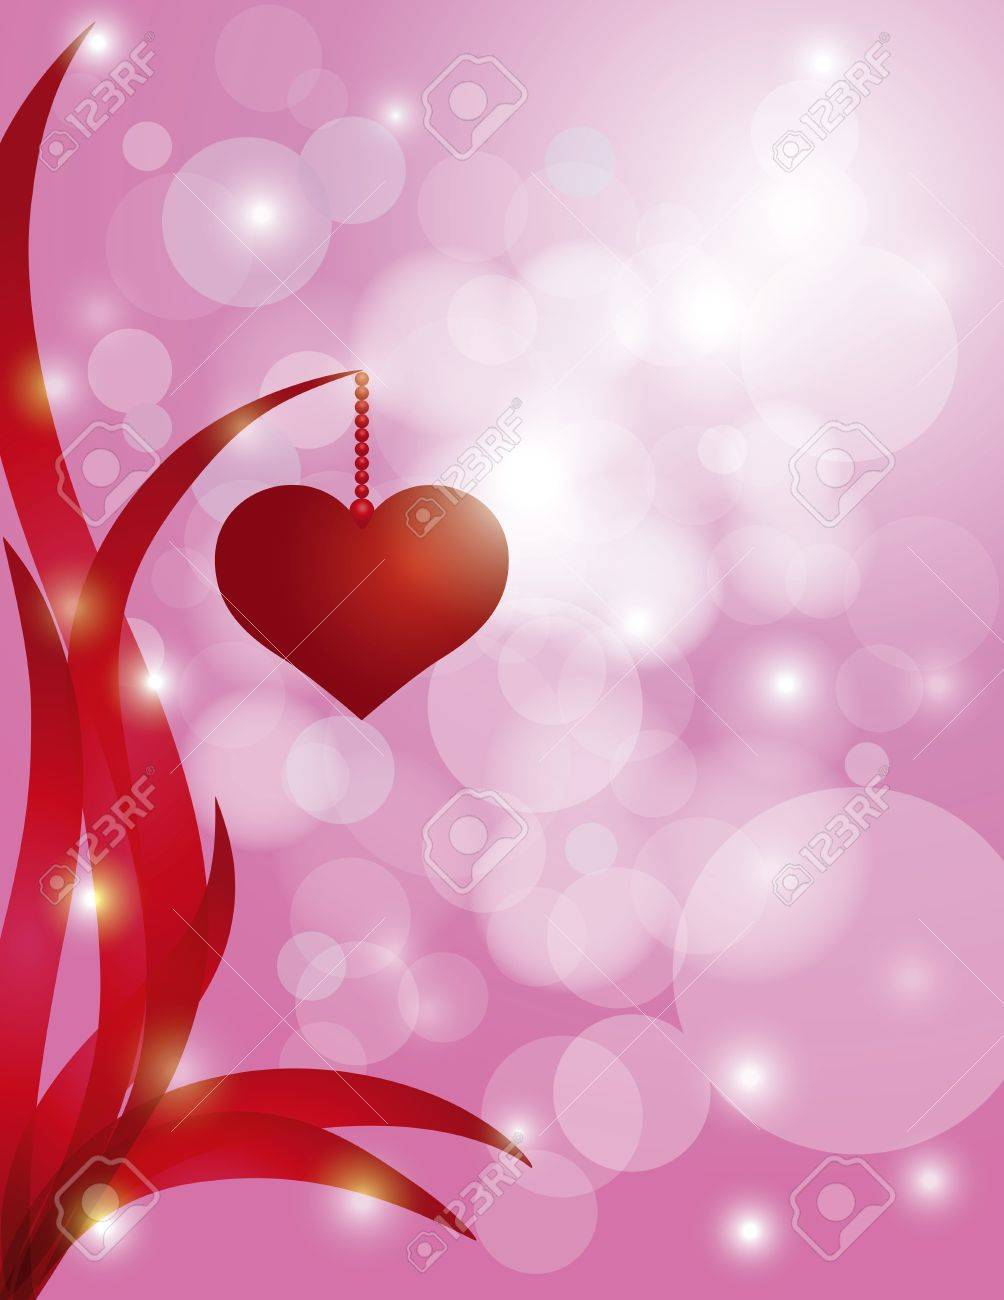 Red Heart Hanging On Swirly Leaf On Sparkling Bokeh Pink 1004x1300